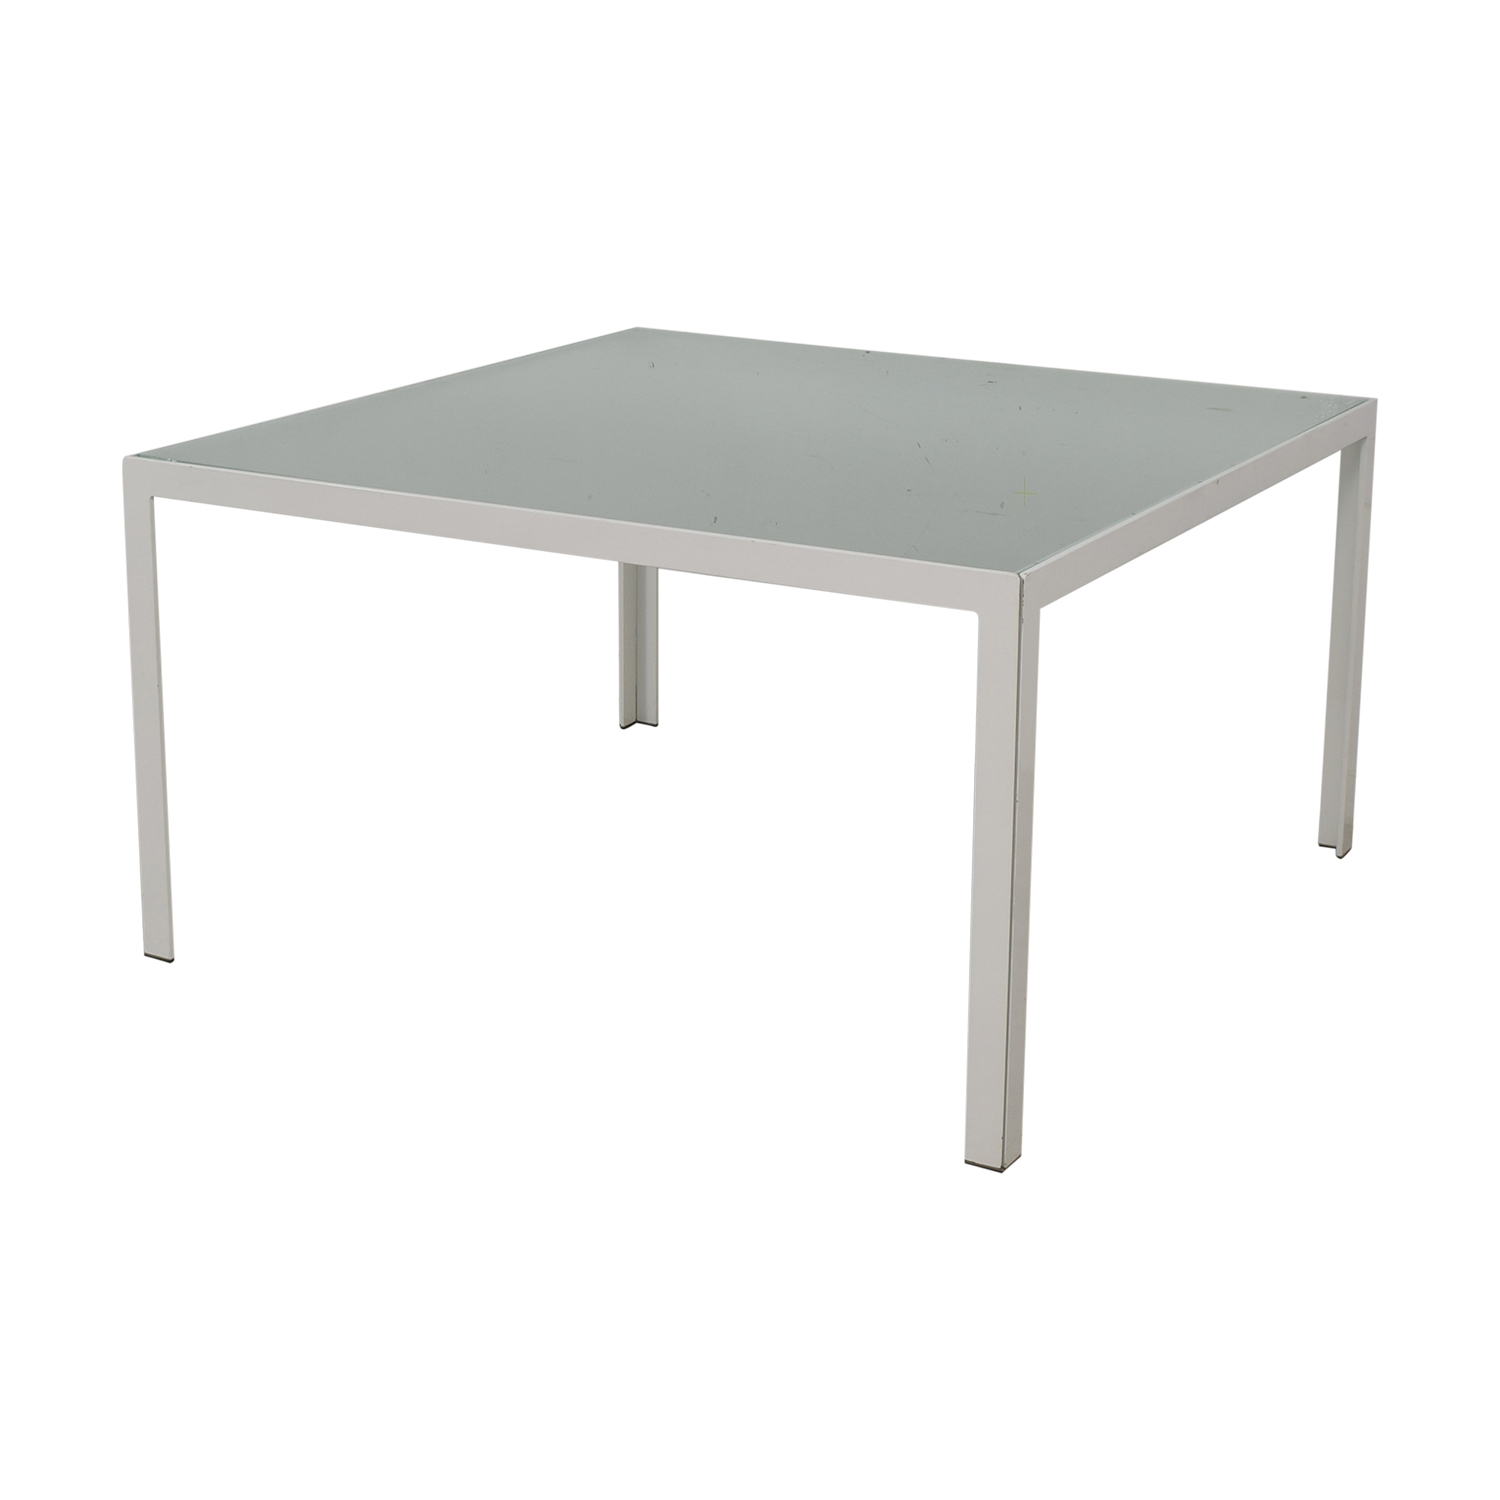 Monica Armani Monica Armani White and Glass Dining Table used